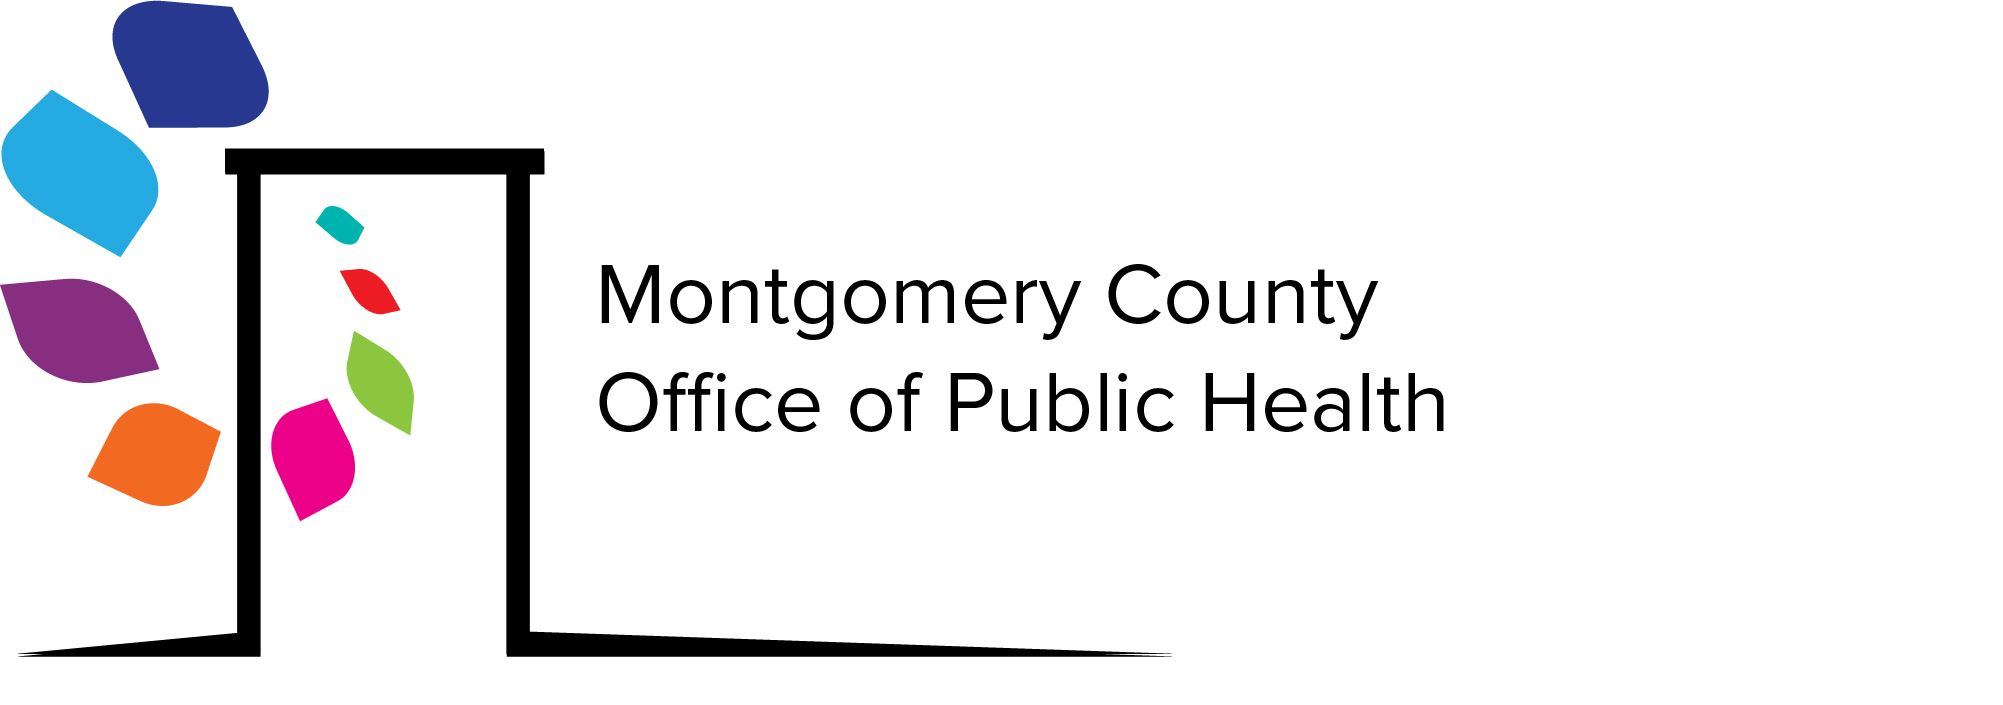 Health and Human Services_Office Public Health_2018 feb 20-09